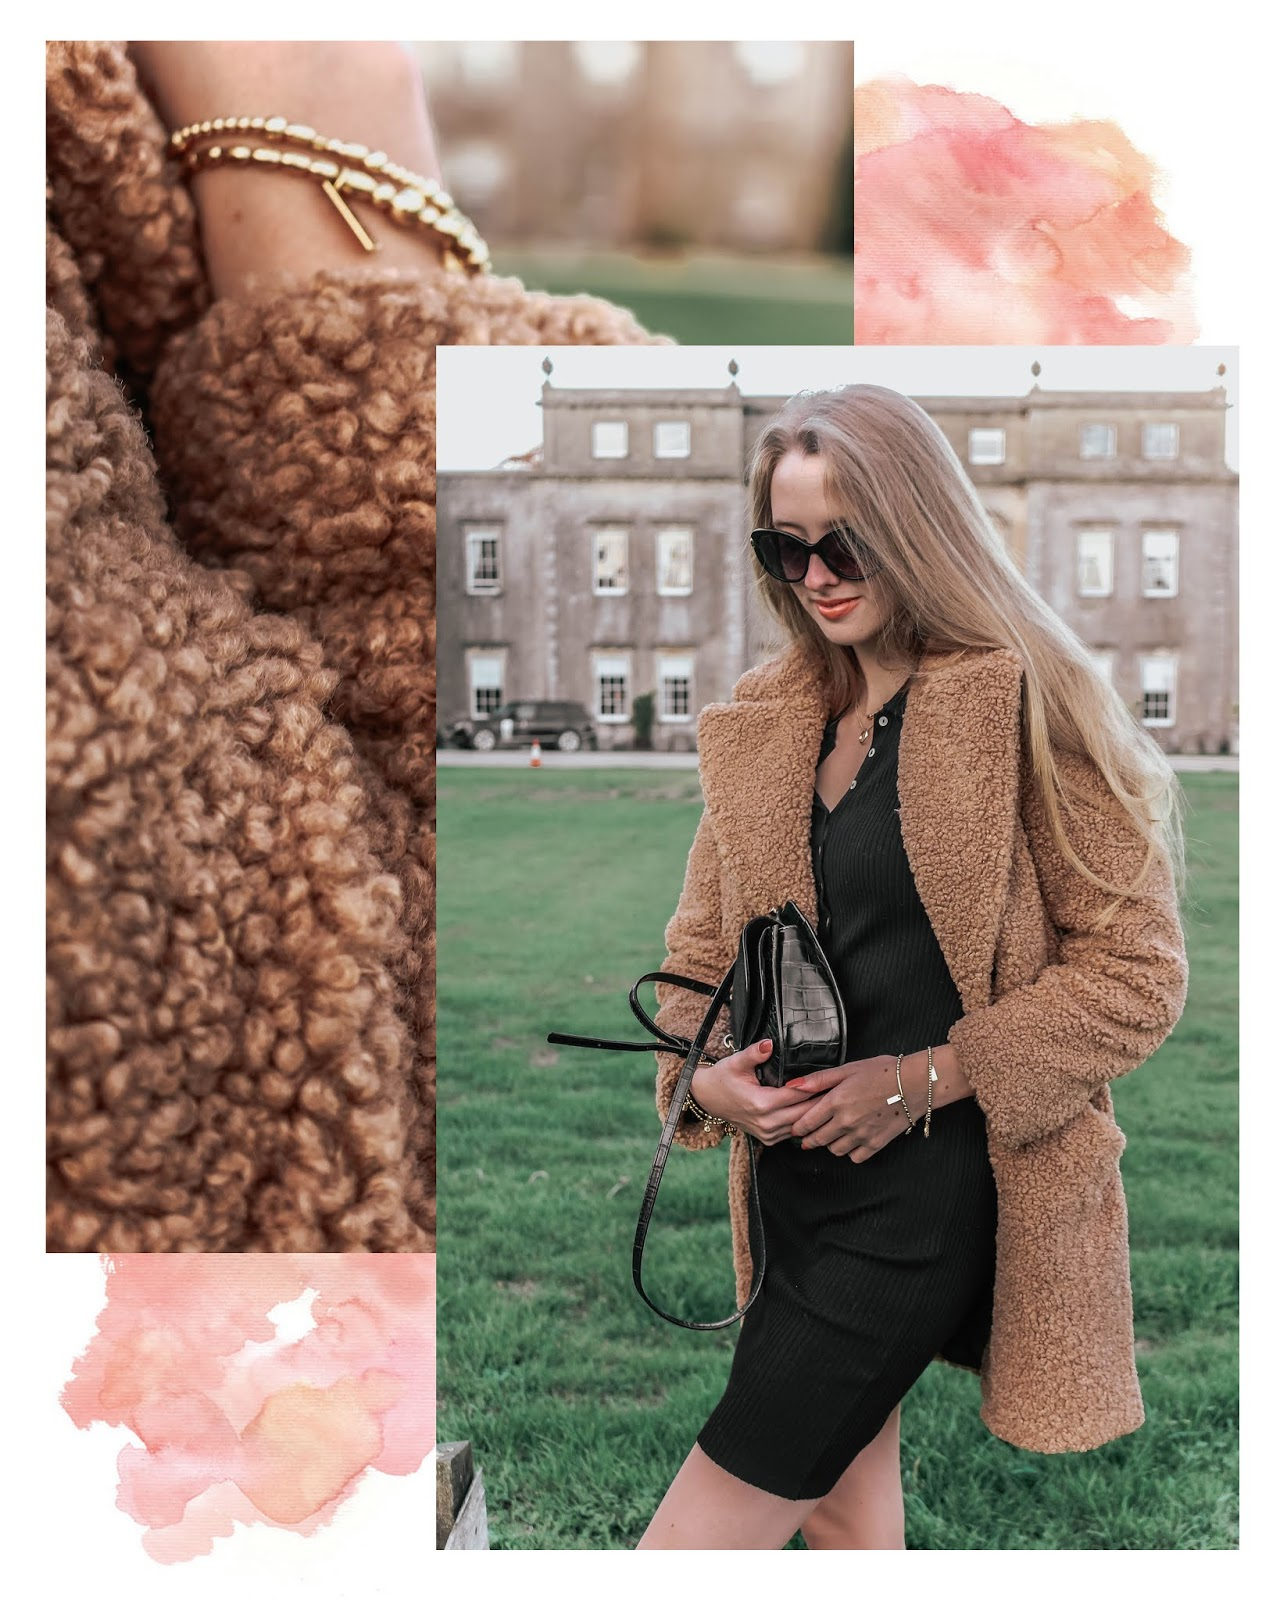 Styling a Teddybear Coat with a Dress